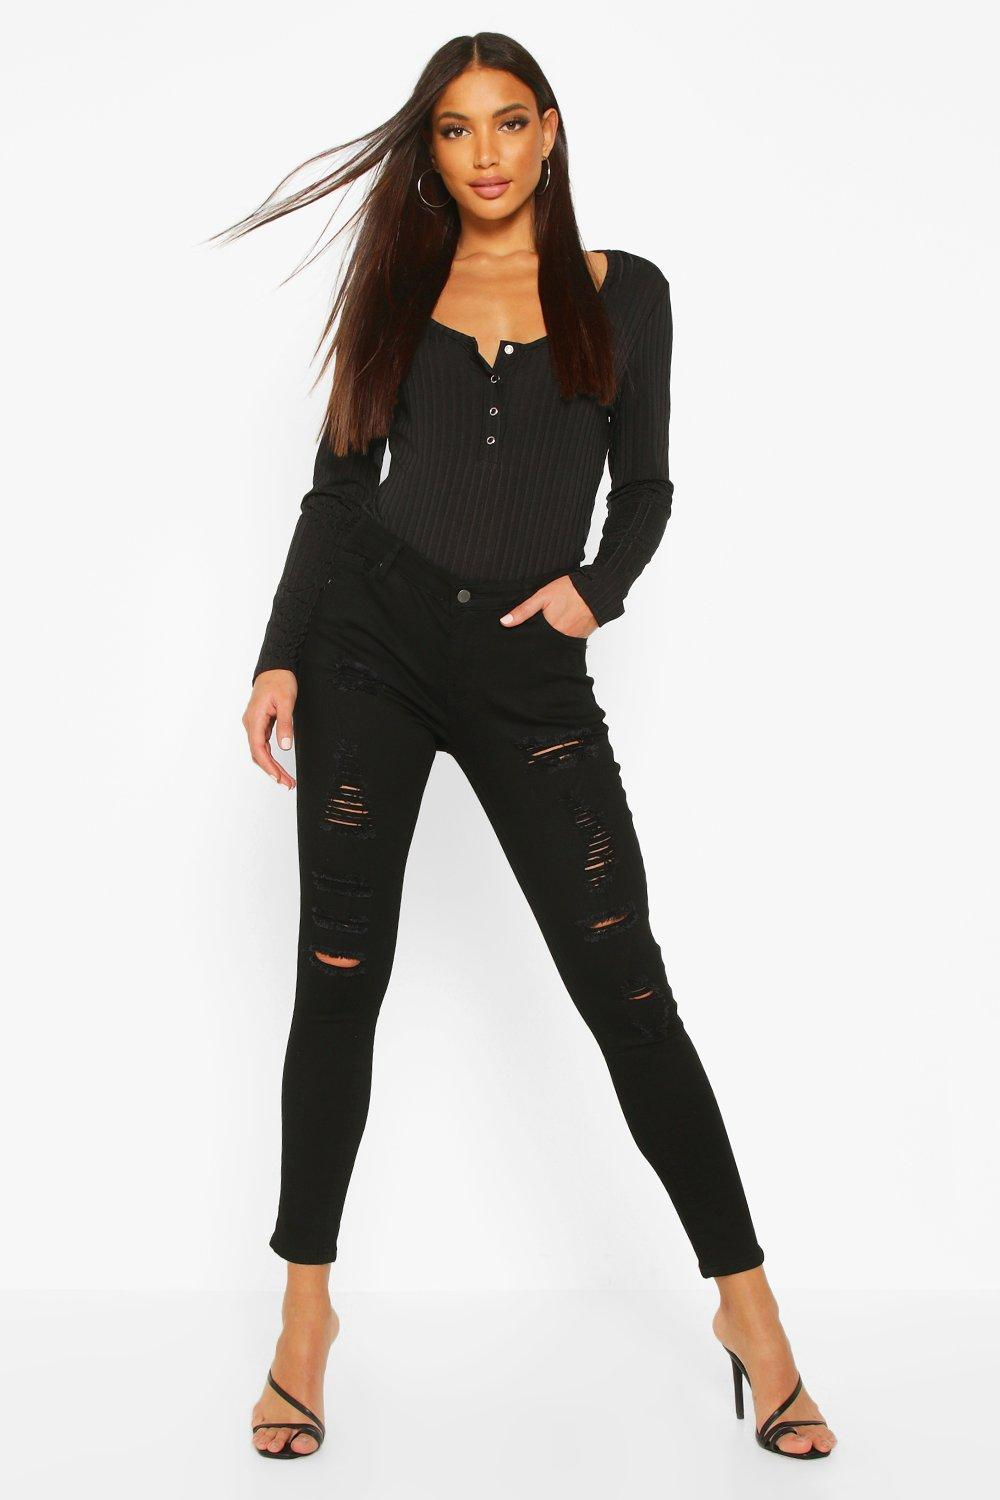 ffecc6a853 Womens Black Low Rise Heavy Ripped Skinny Jeans. Hover to zoom